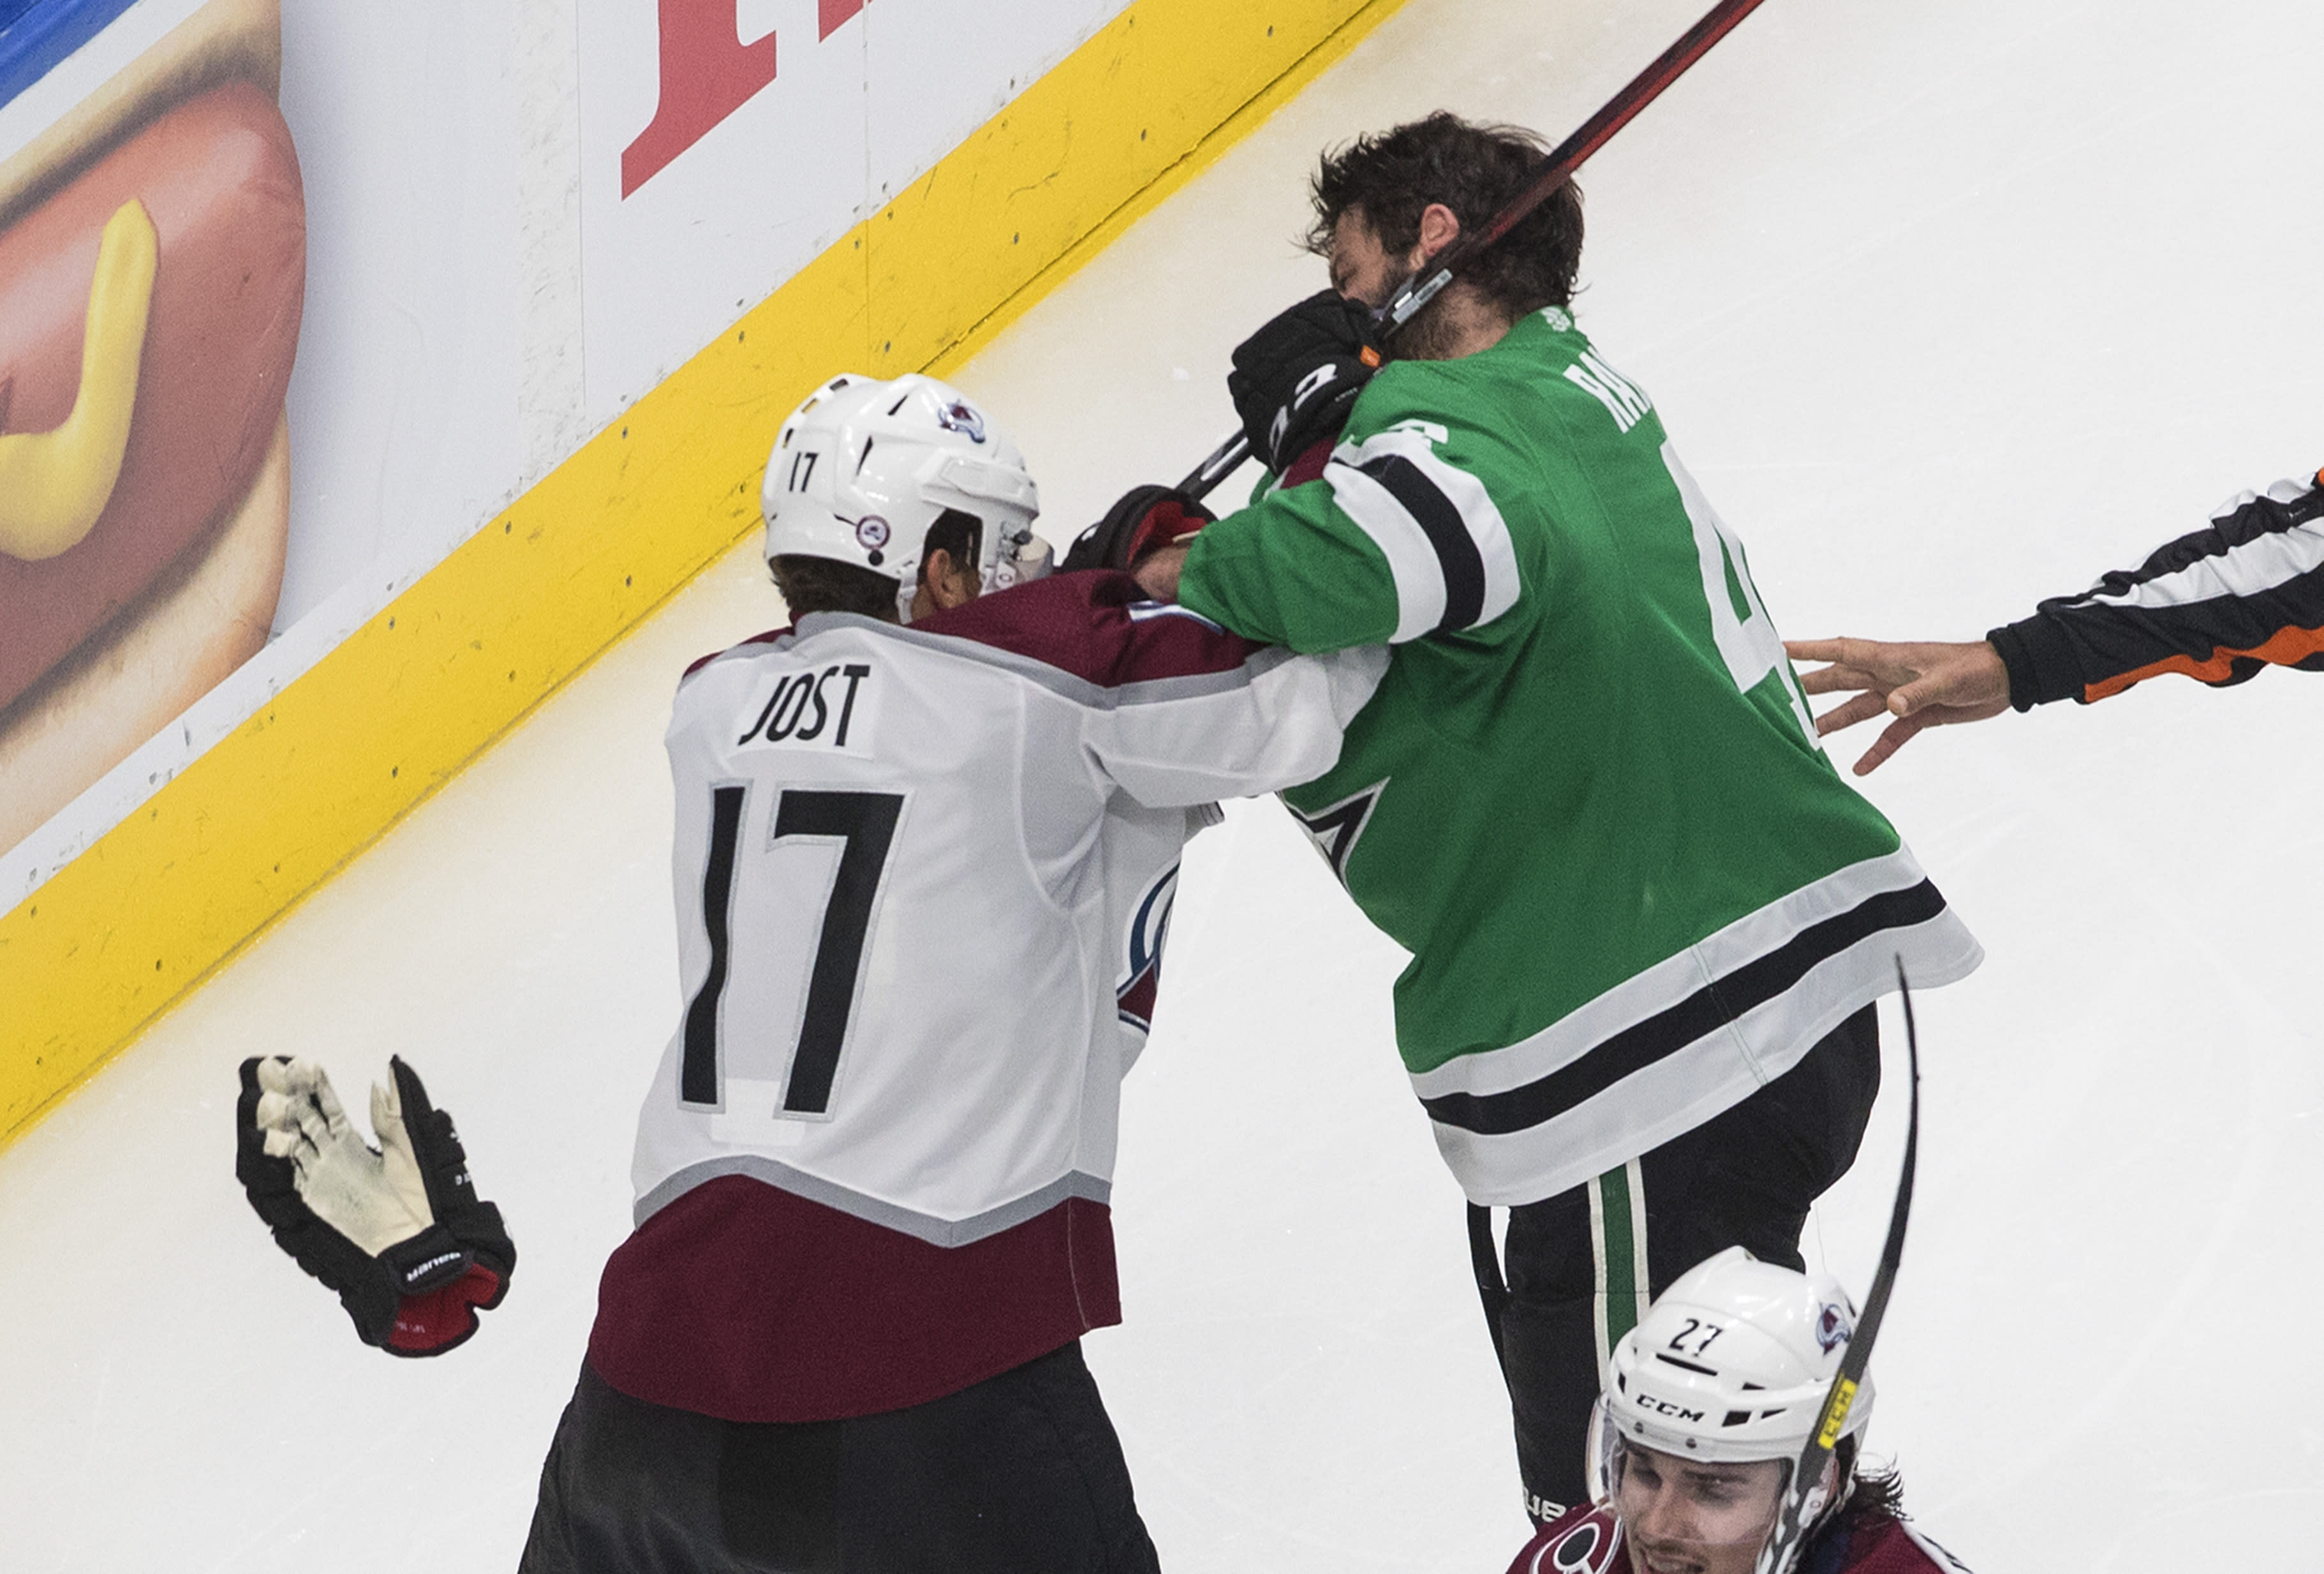 Dallas Stars' Alexander Radulov (47) and Colorado Avalanche's Tyson Jost (17) tussle during the third period of Game 3 of an NHL hockey second-round playoff series, Wednesday, Aug. 26, 2020, in Edmonton, Alberta. (Jason Franson/The Canadian Press via AP)